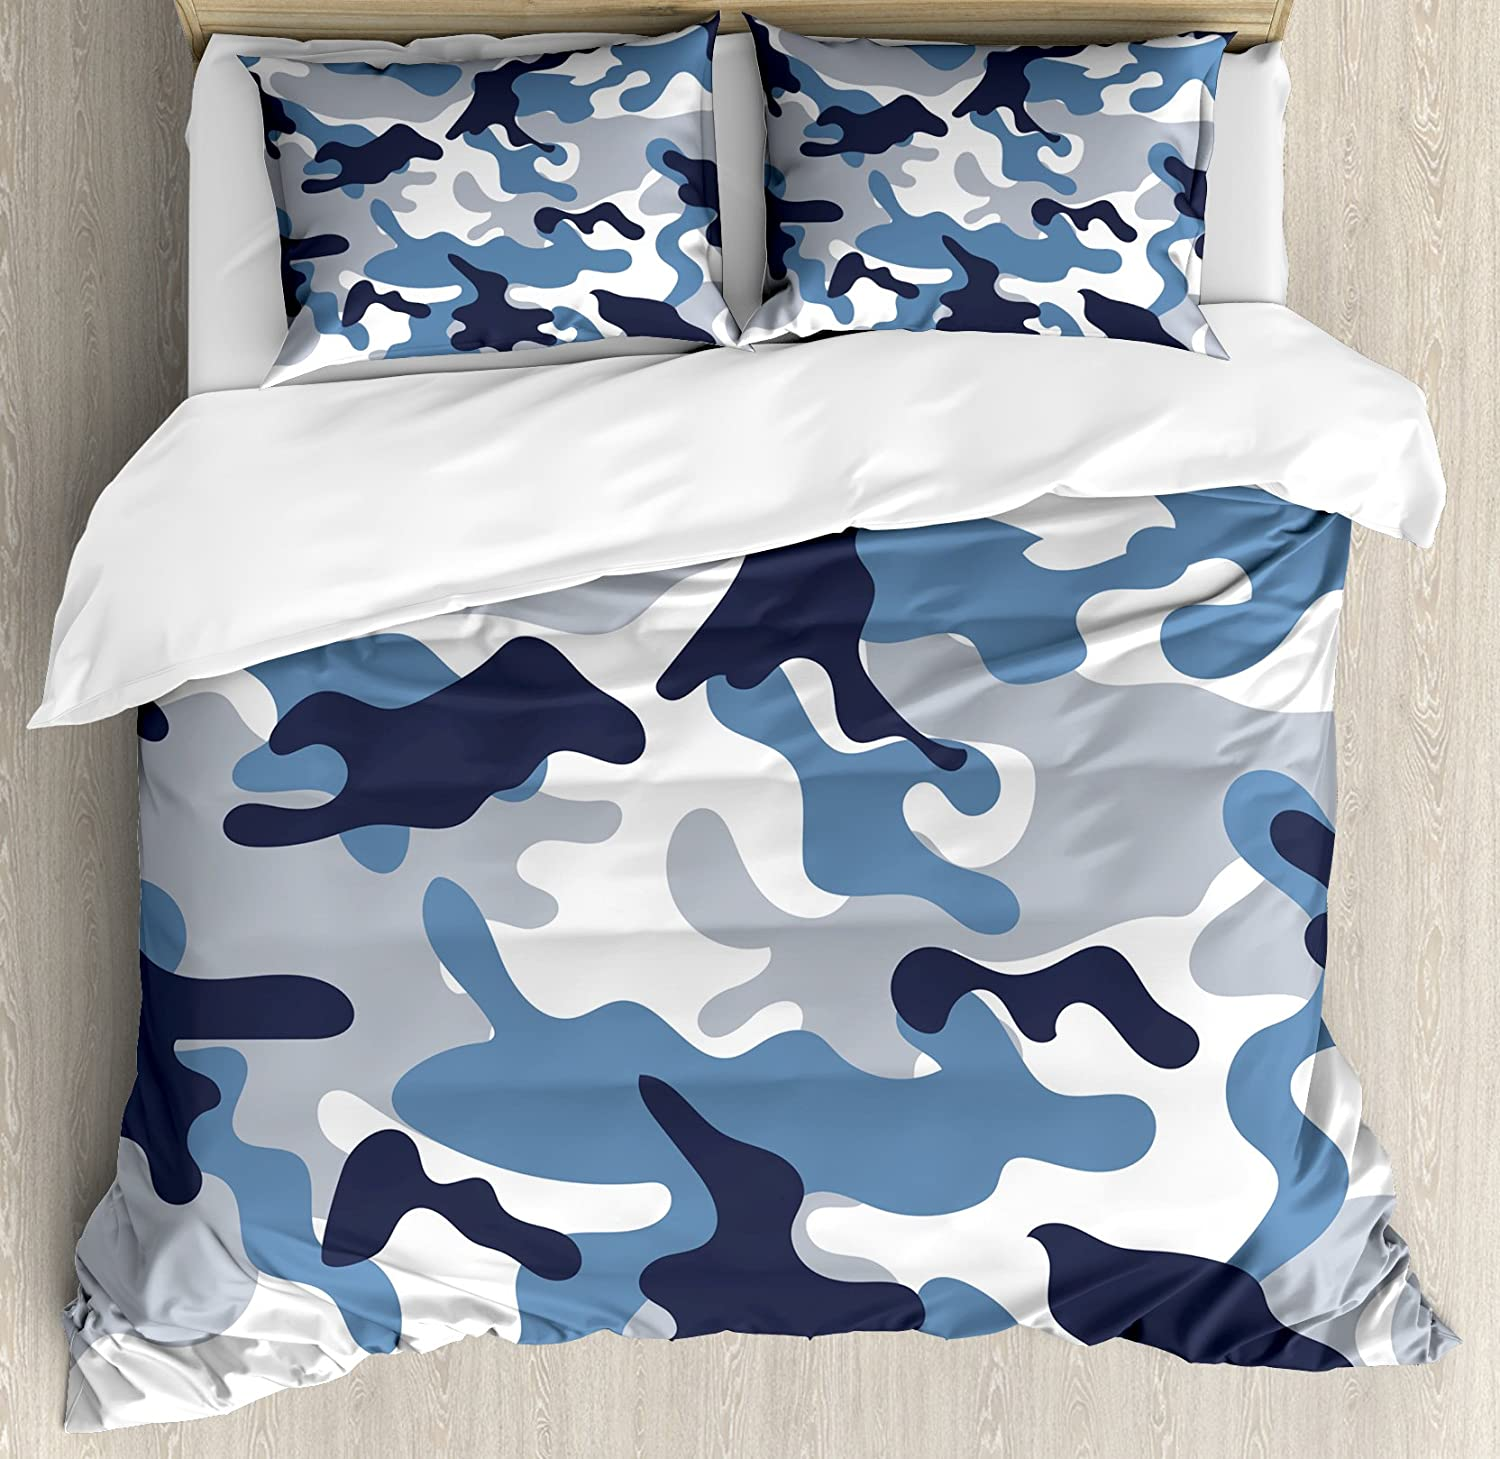 Ambesonne Camouflage Duvet Cover Set Queen Size, Illustration with Abstract Soft colors Pattern Camouflage Design, Decorative 3 Piece Bedding Set with 2 Pillow Shams, Slate bluee Indigo Grey